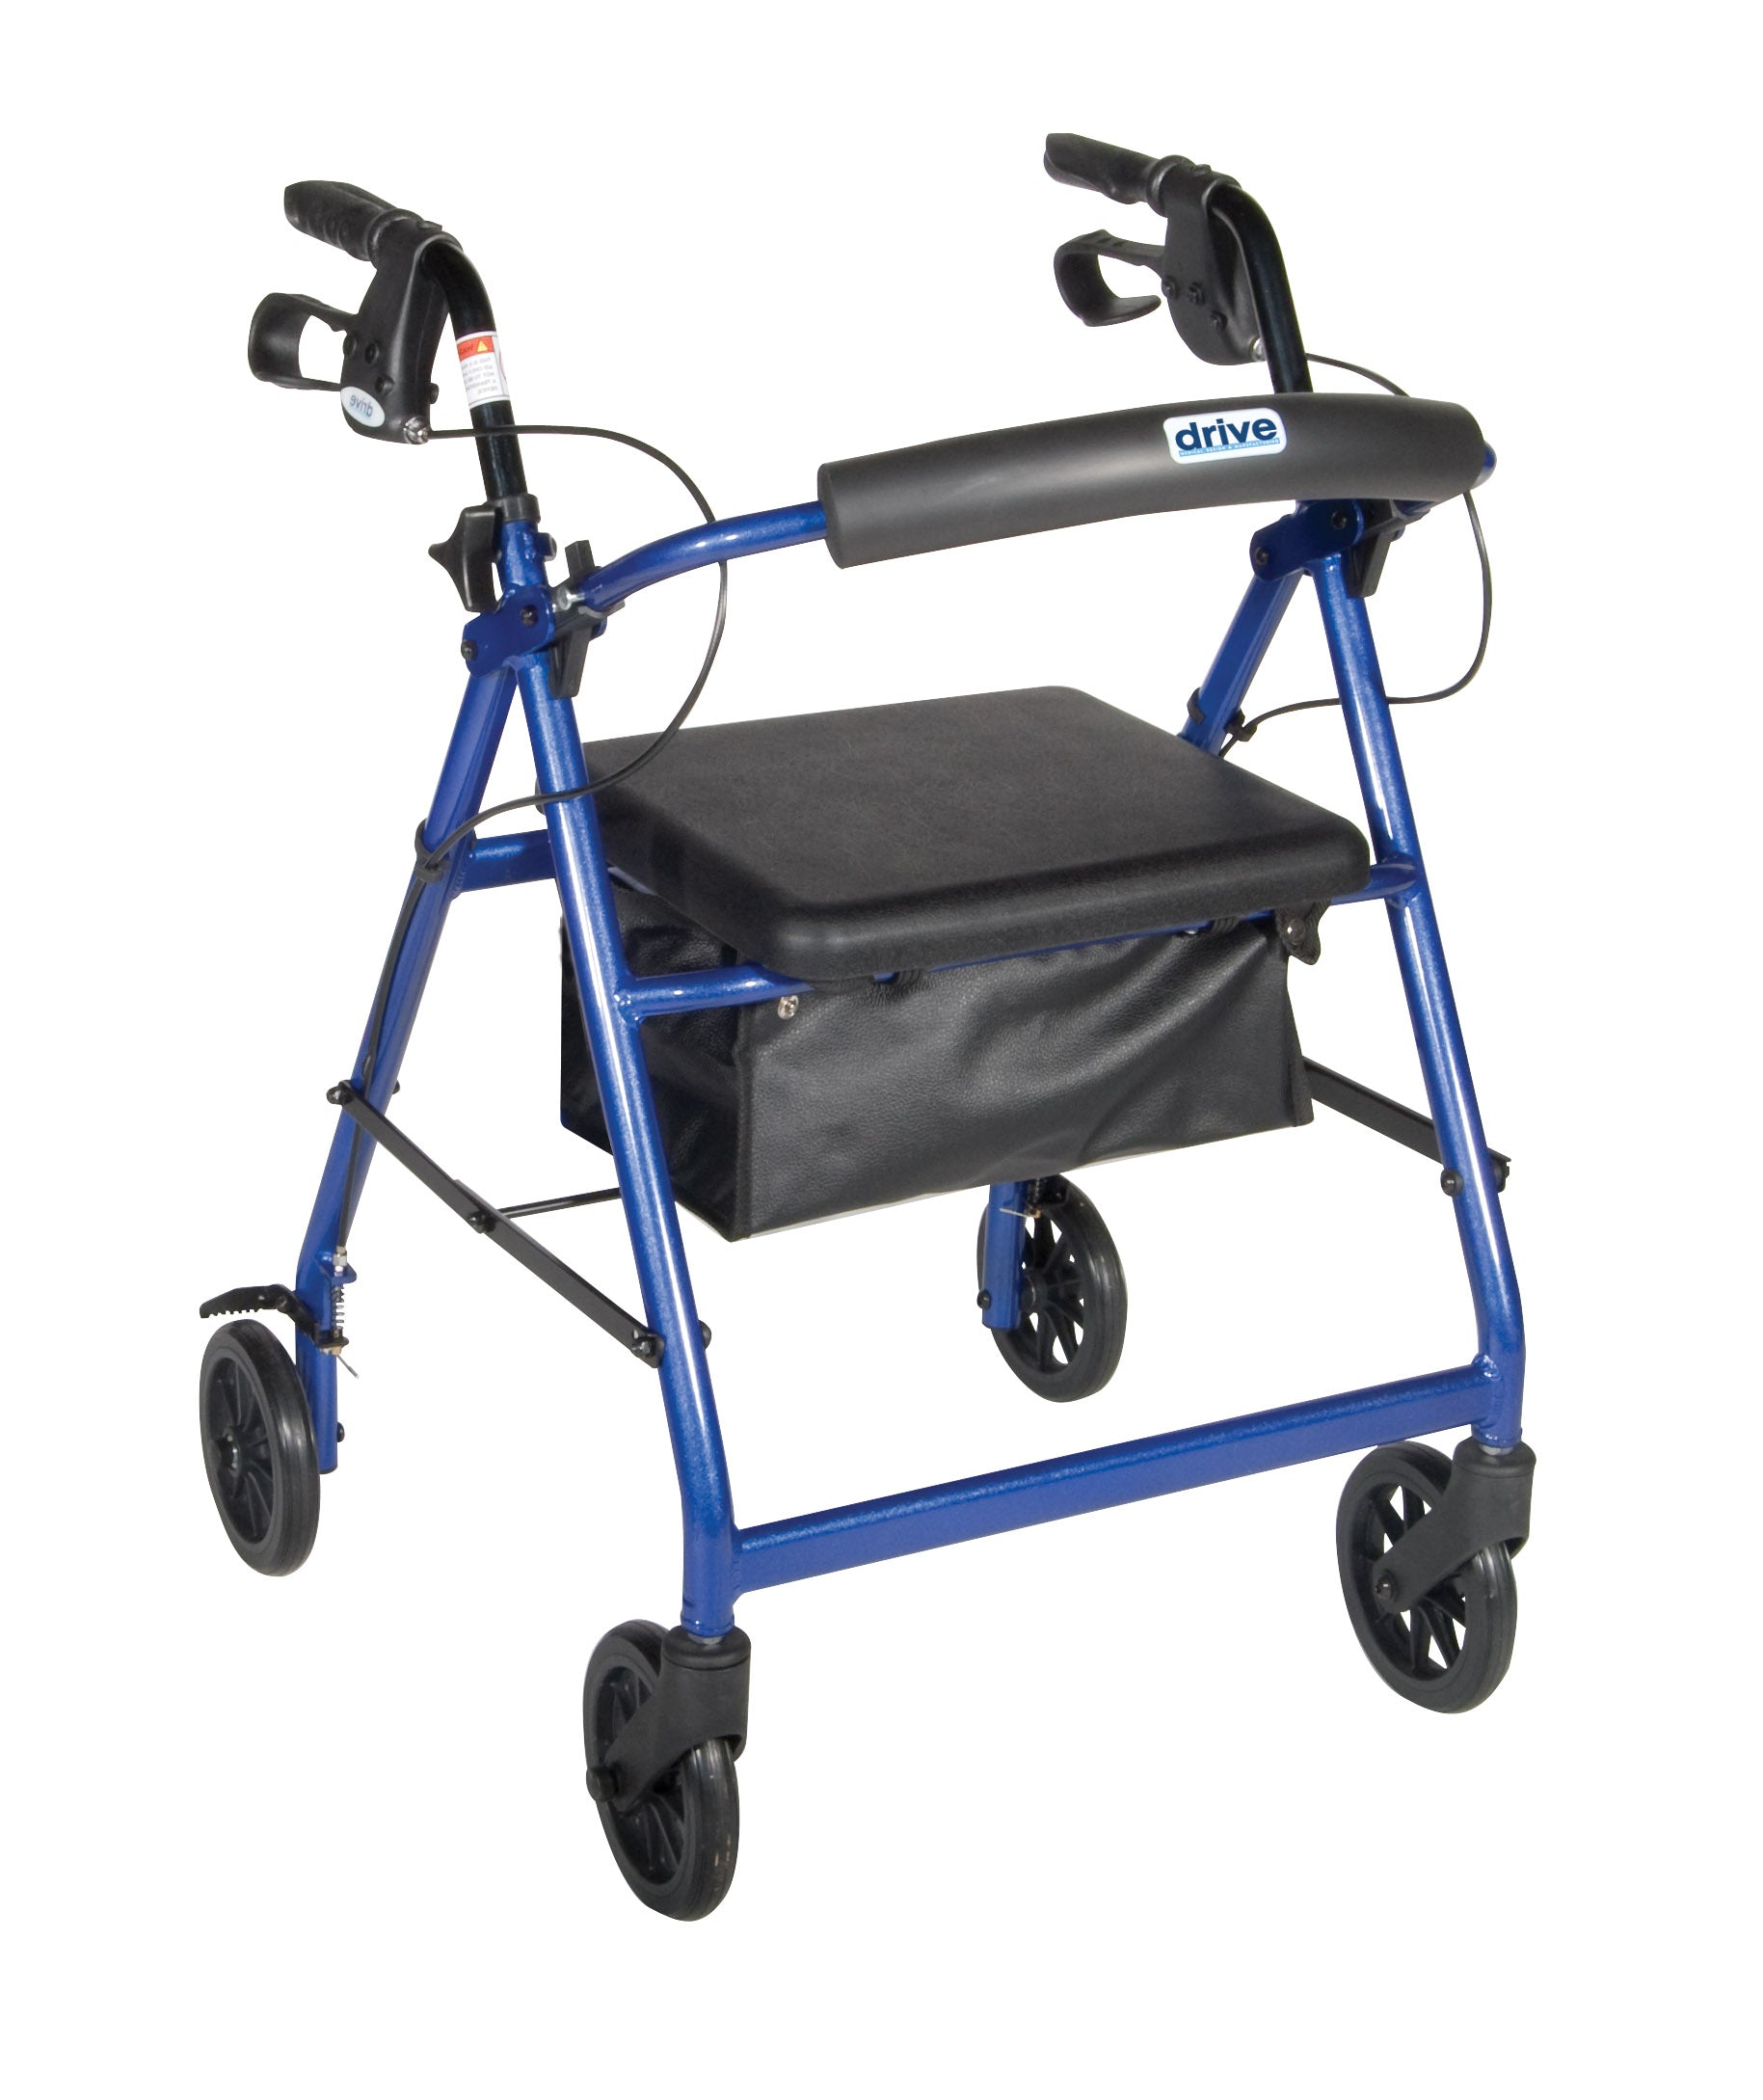 Drive Aluminum Rollator - 6in Casters w/ Loop Locks (Blue) - Open Box but Unused